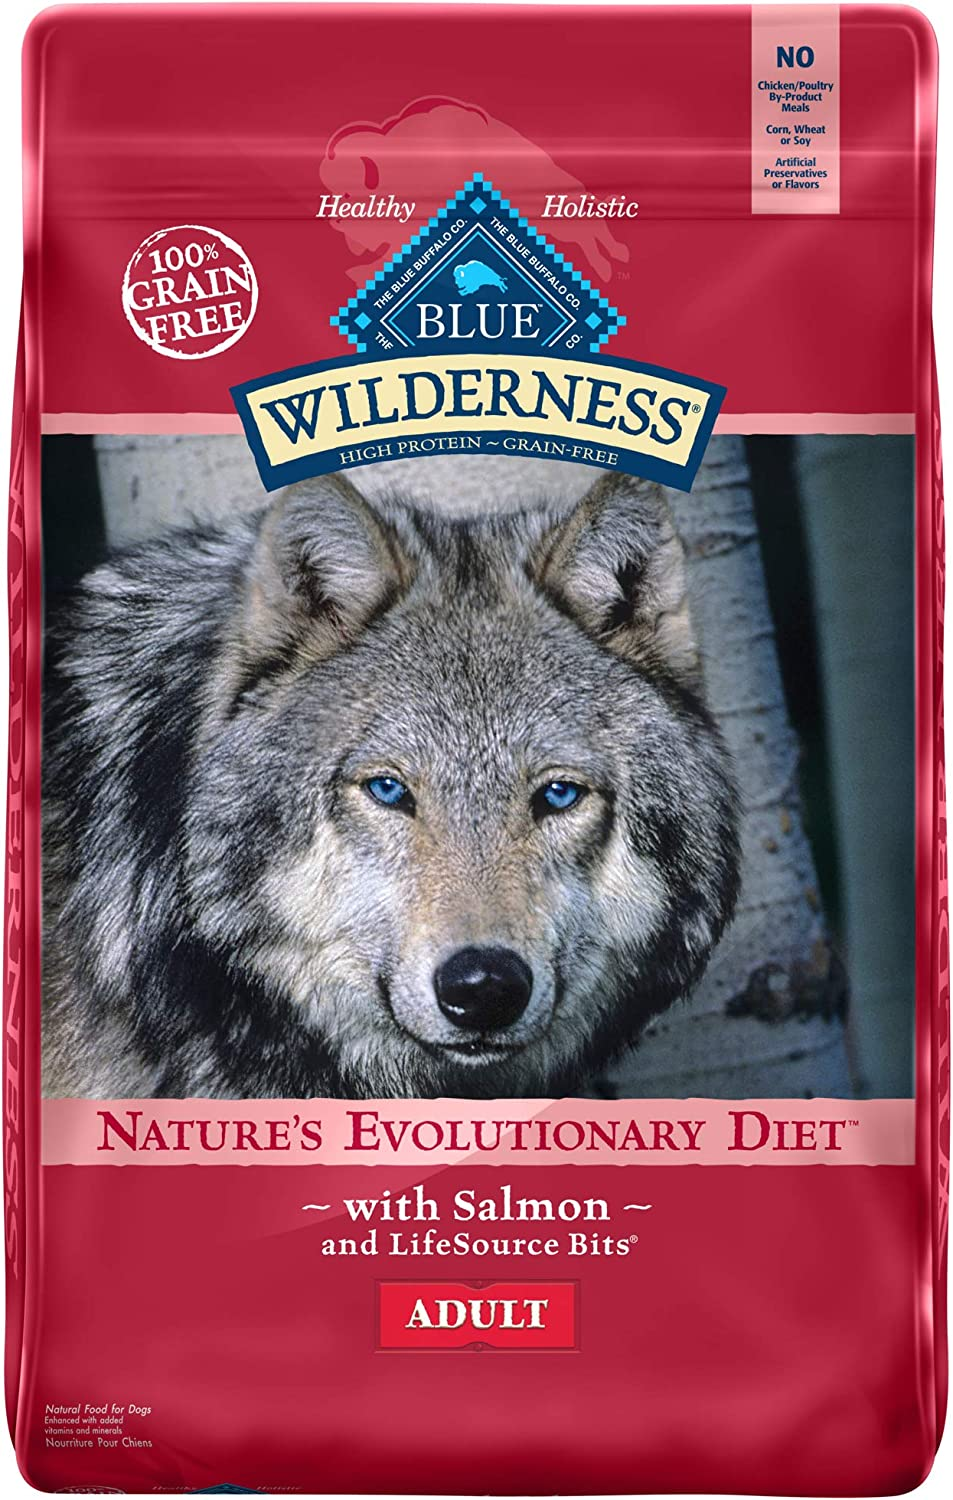 4. Blue Buffalo Wilderness Salmon Recipe Grain-Free Dry Dog Food